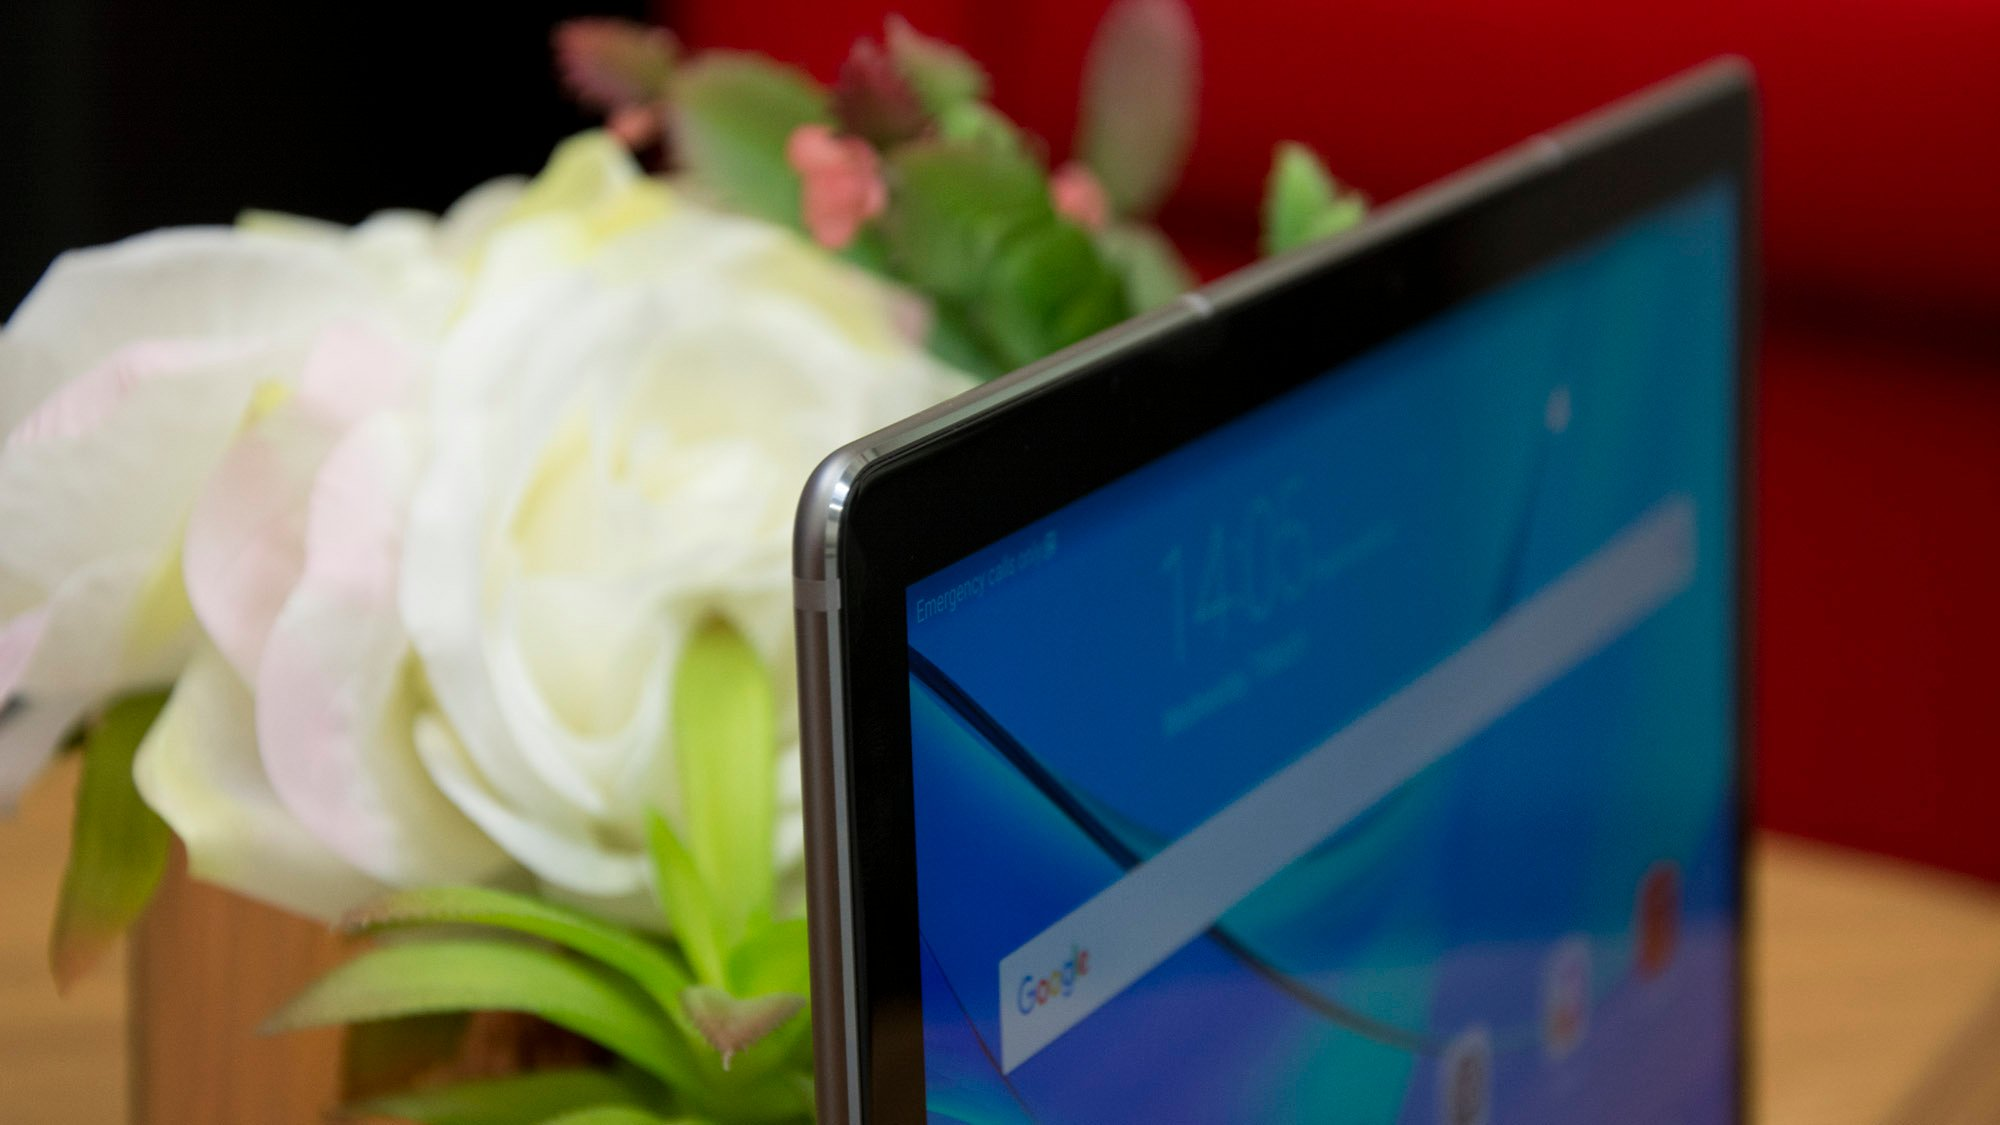 Huawei MediaPad M5 Pro (10 8in) review: The elegant tablet